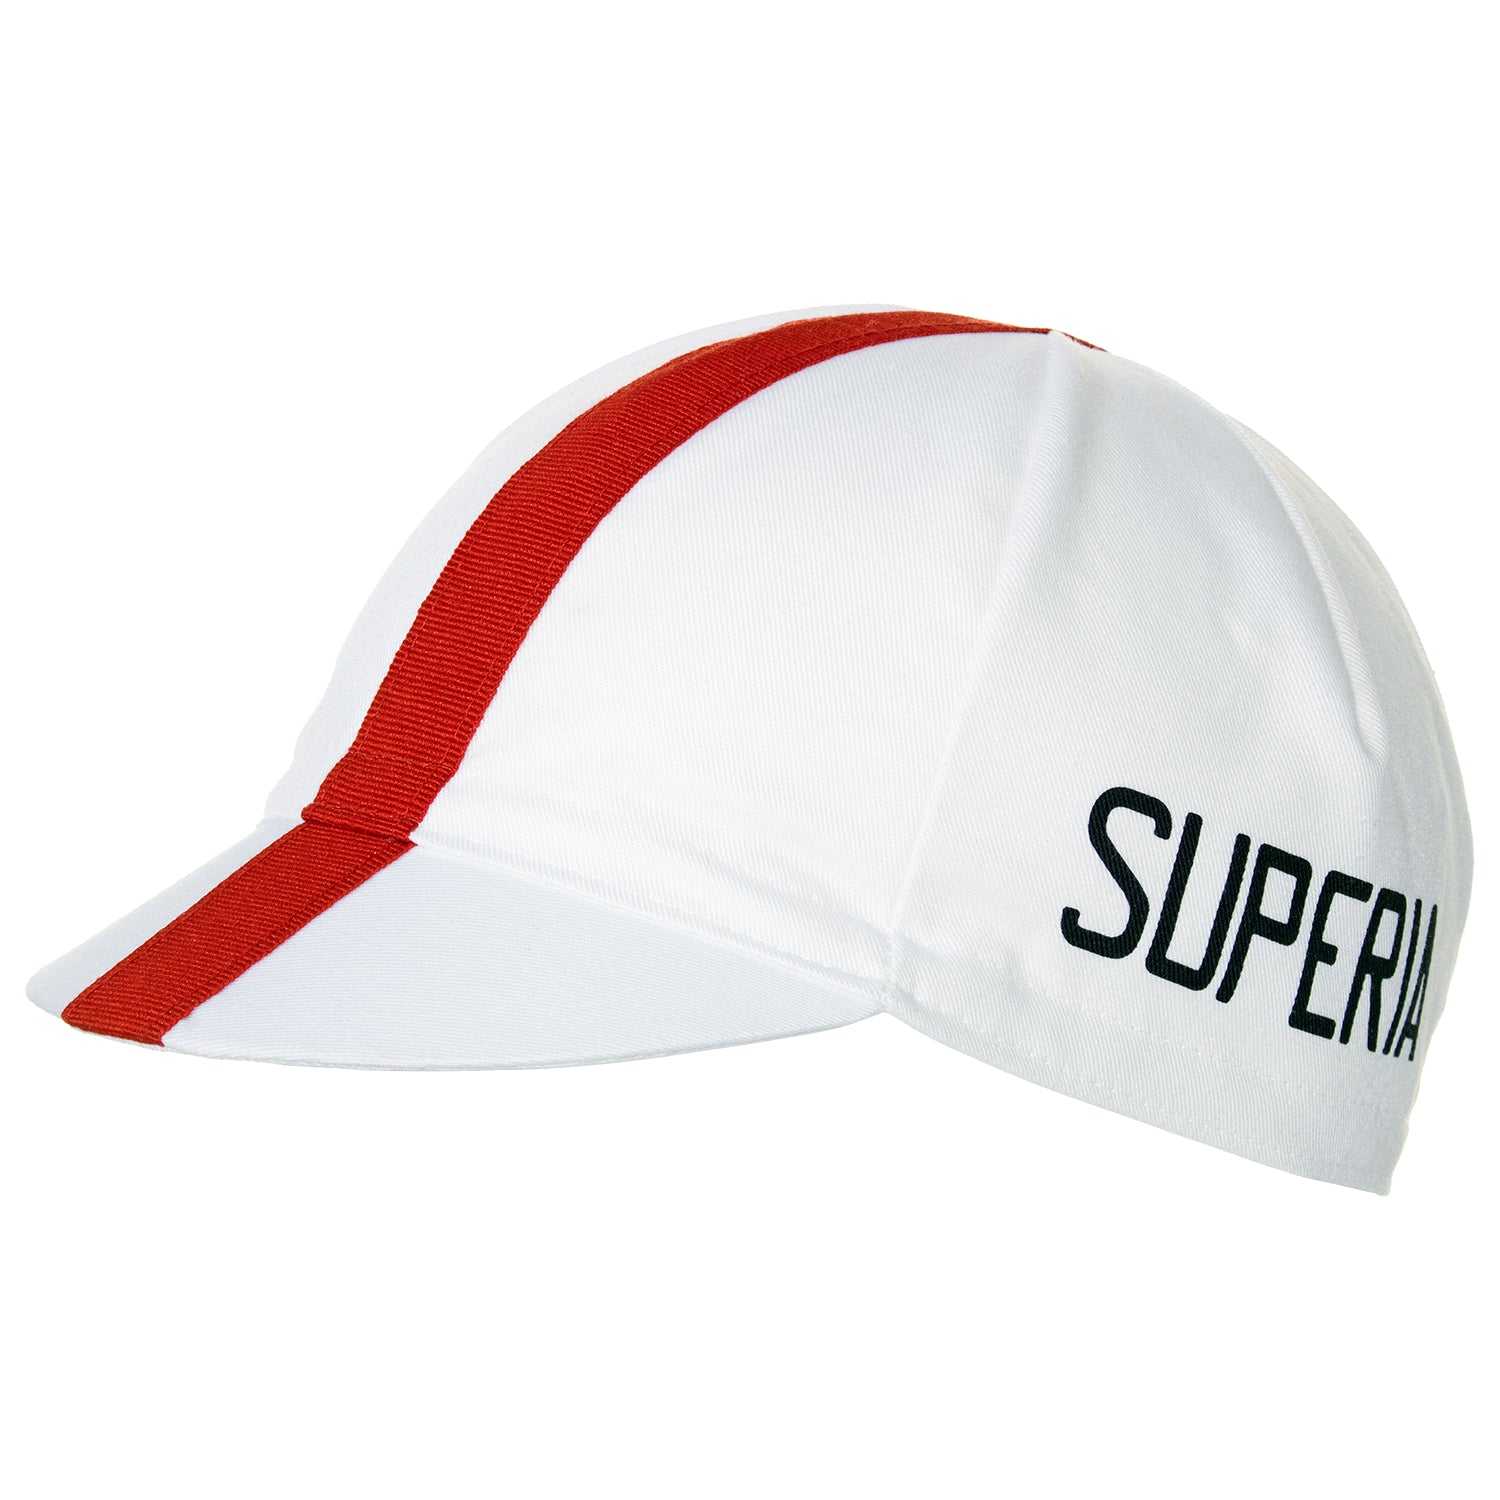 G.S. Solo Superia Retro Cotton Cycling Cap